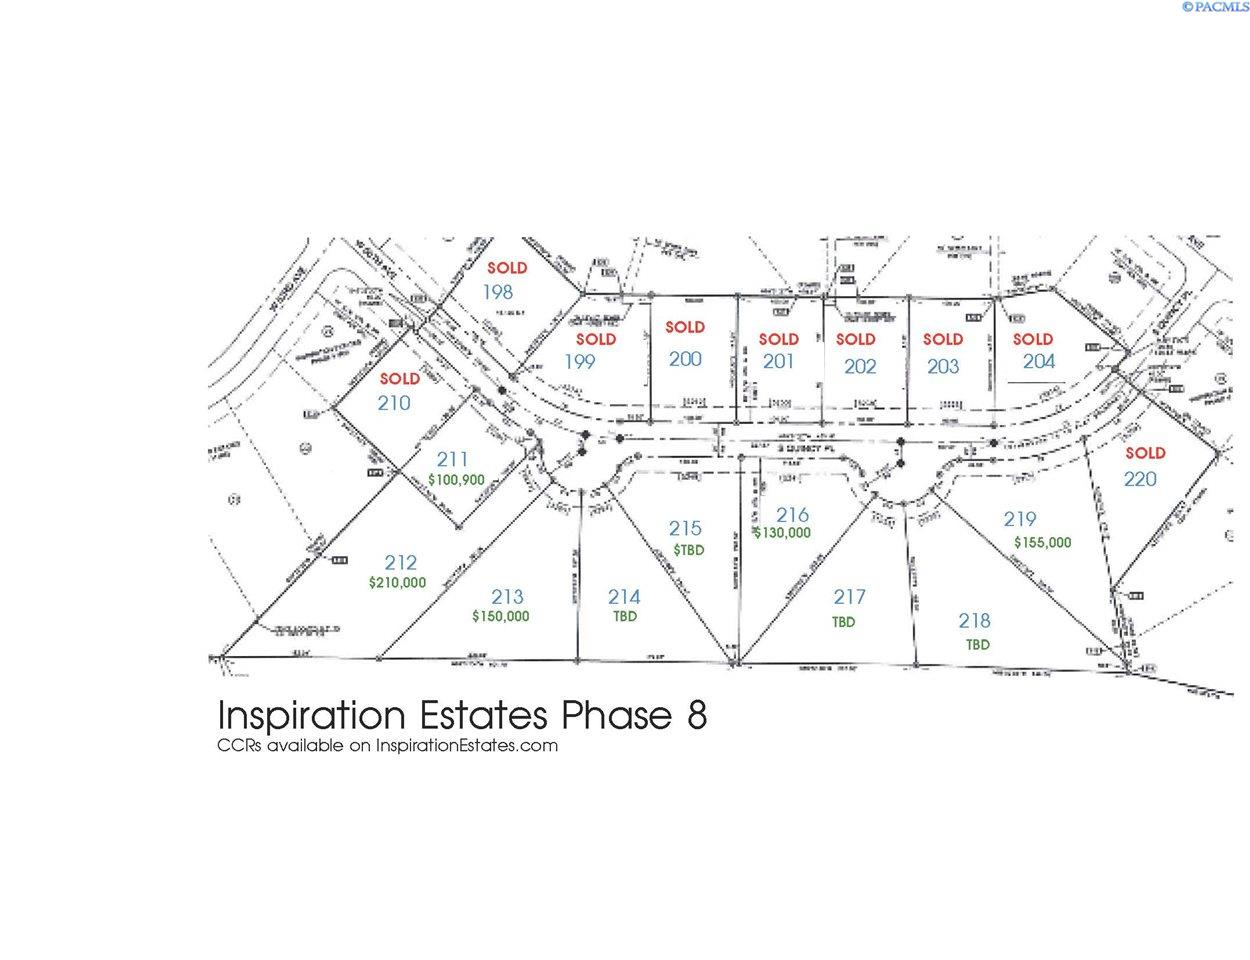 Land for Sale at IE LOT 211 PHASE VIII Kennewick, Washington 99337 United States